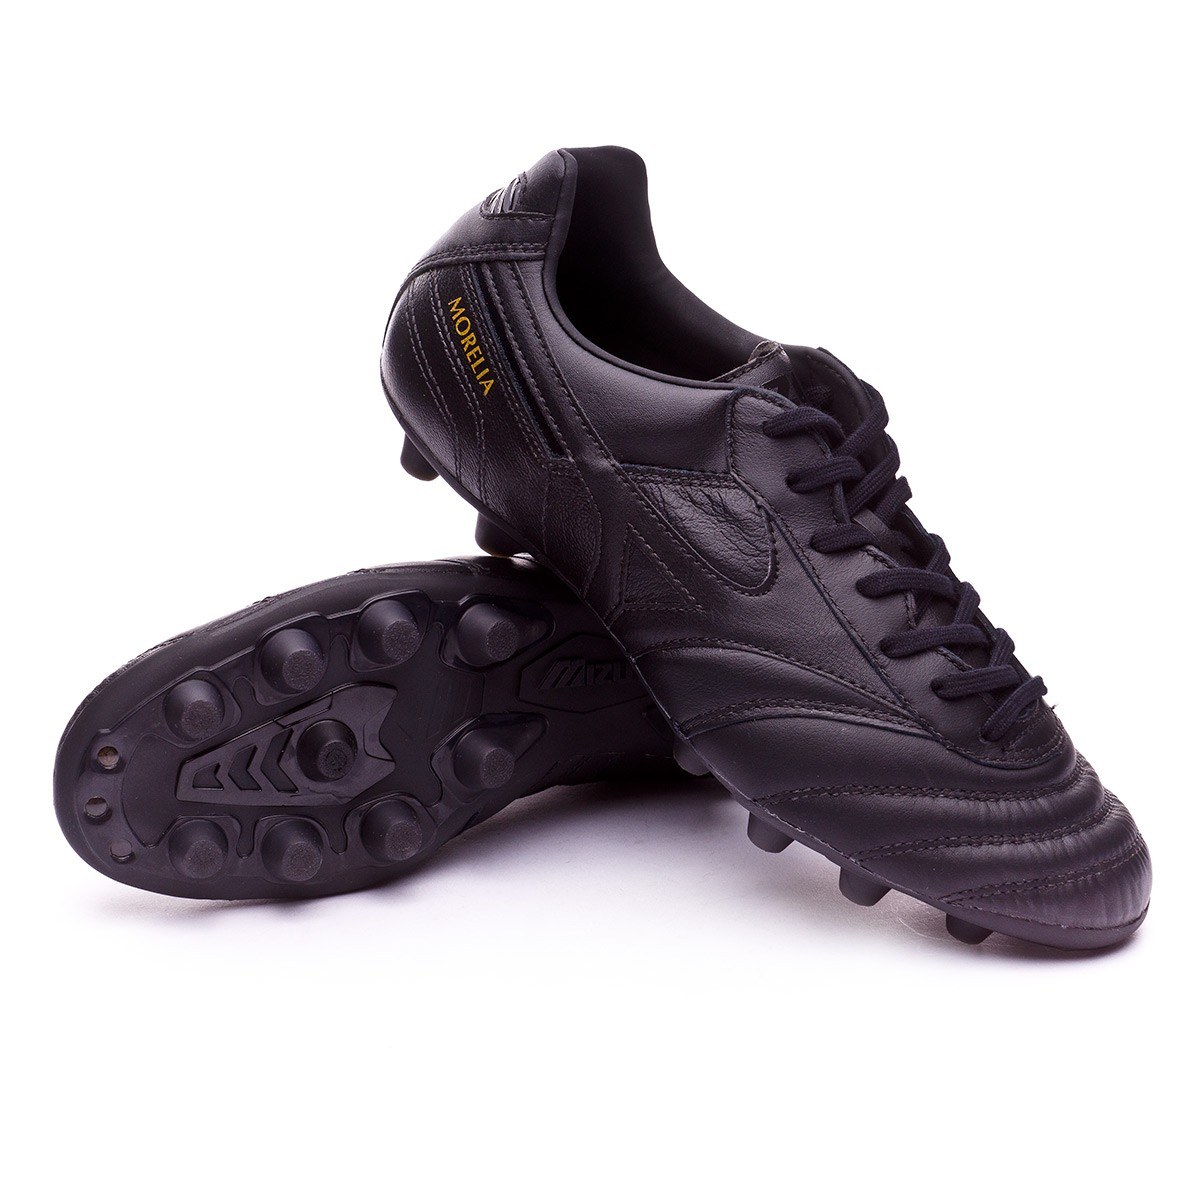 Boot Mizuno Morelia II MD Black - Football store Fútbol Emotion f05a06ae9562c